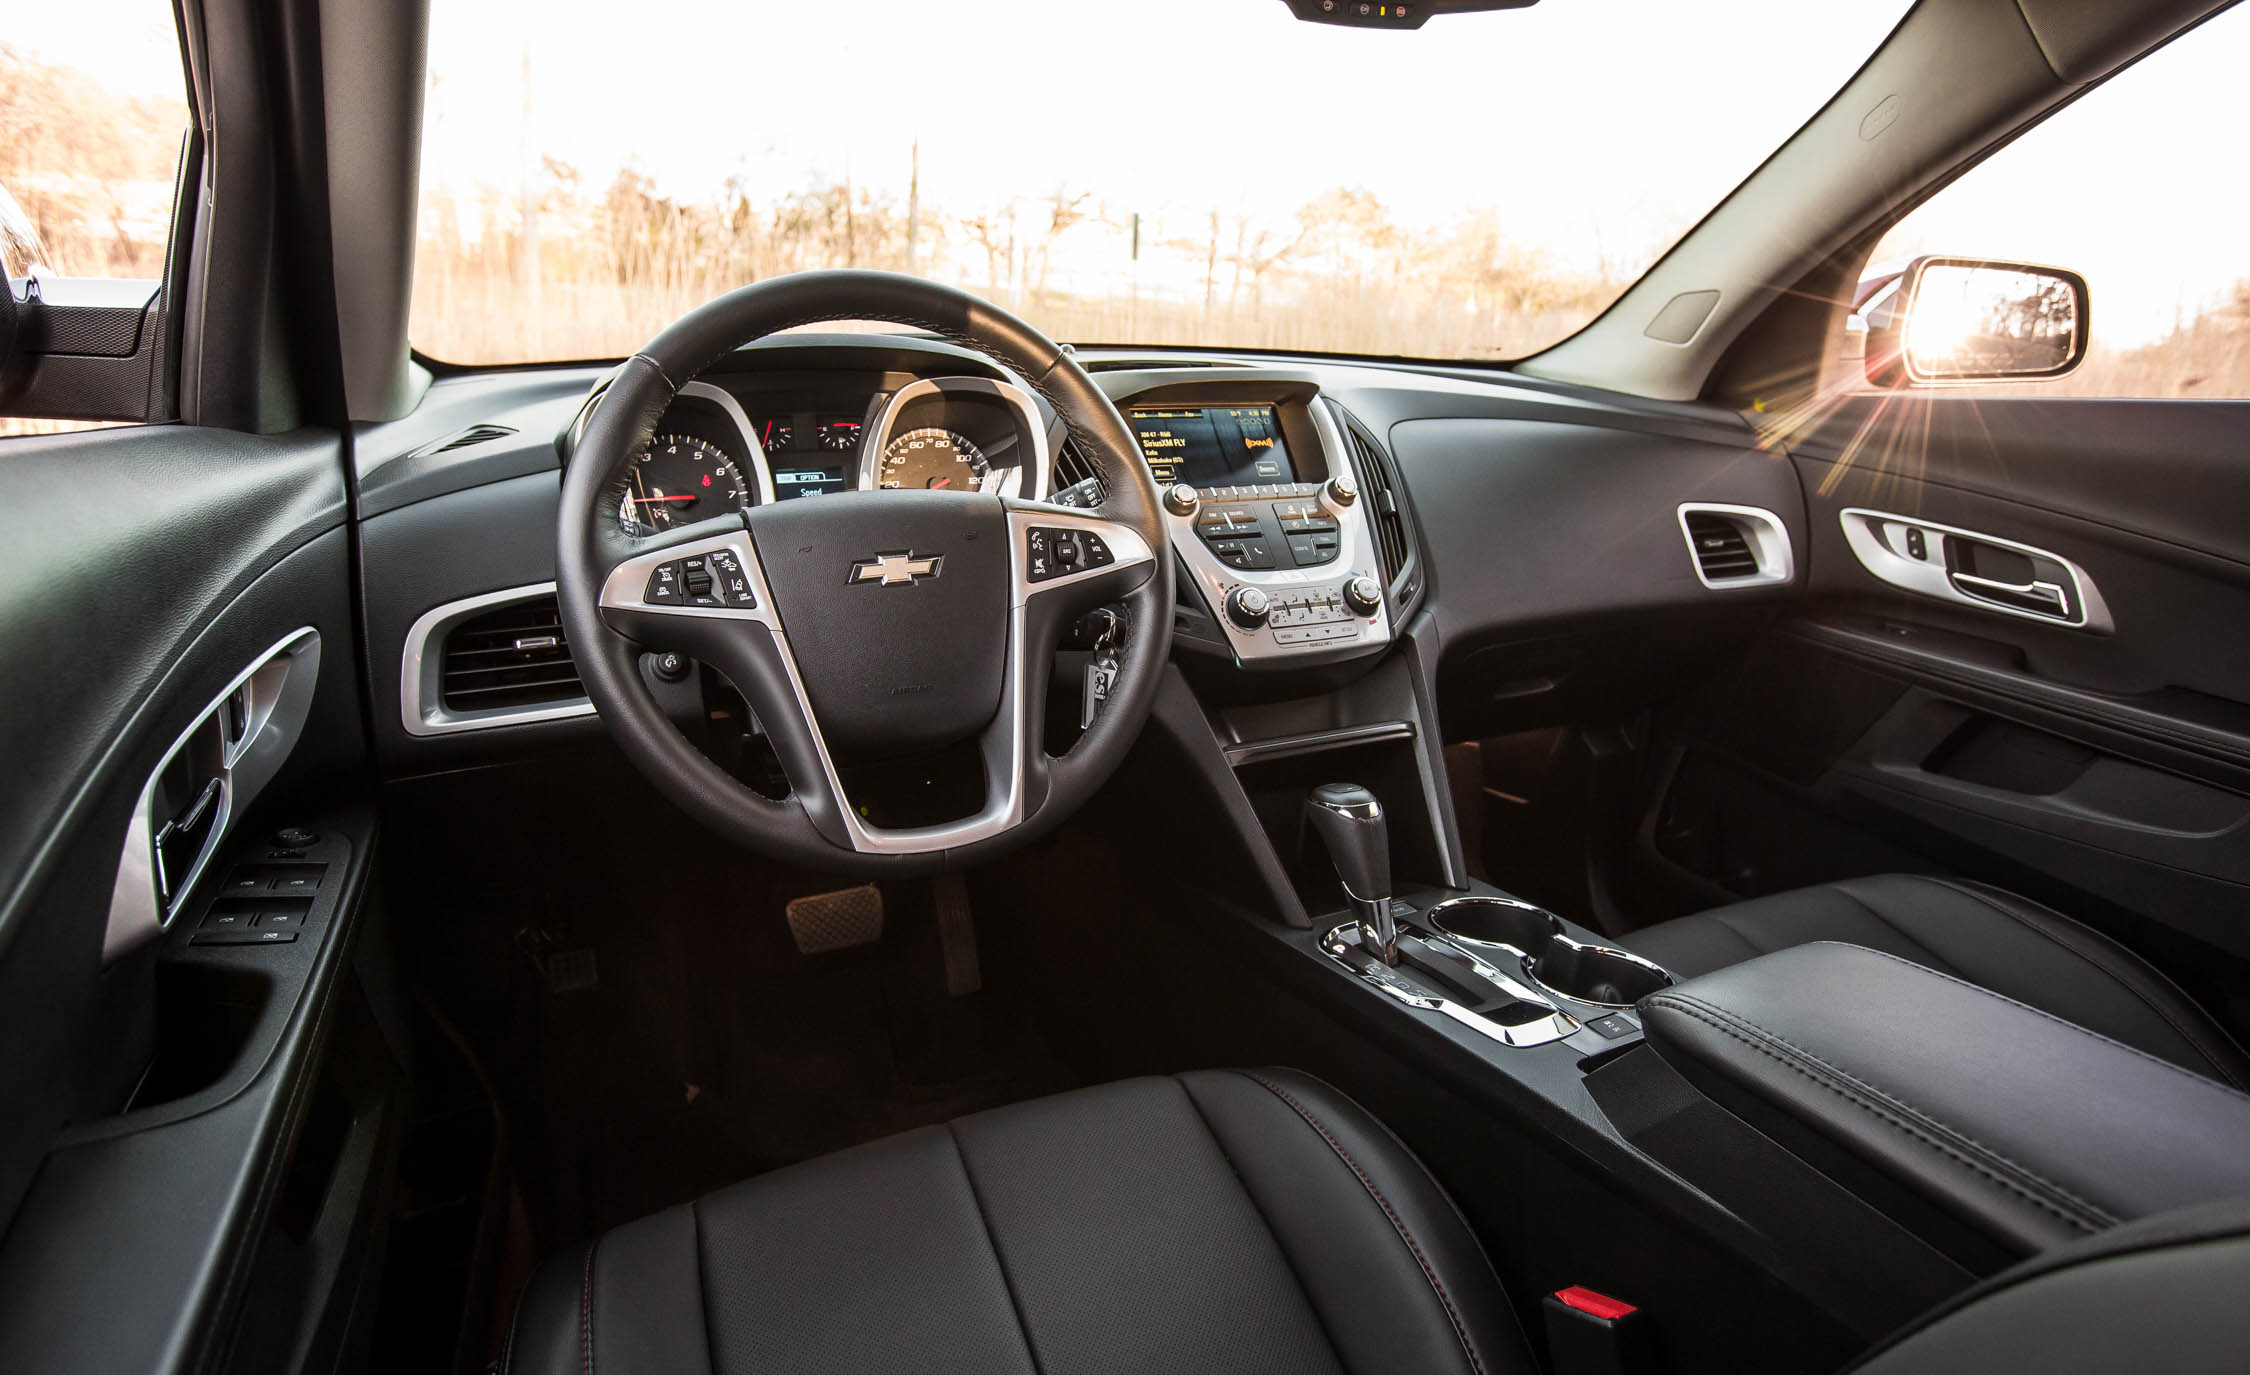 2016 Chevrolet Equinox LTZ Interior Cockpit